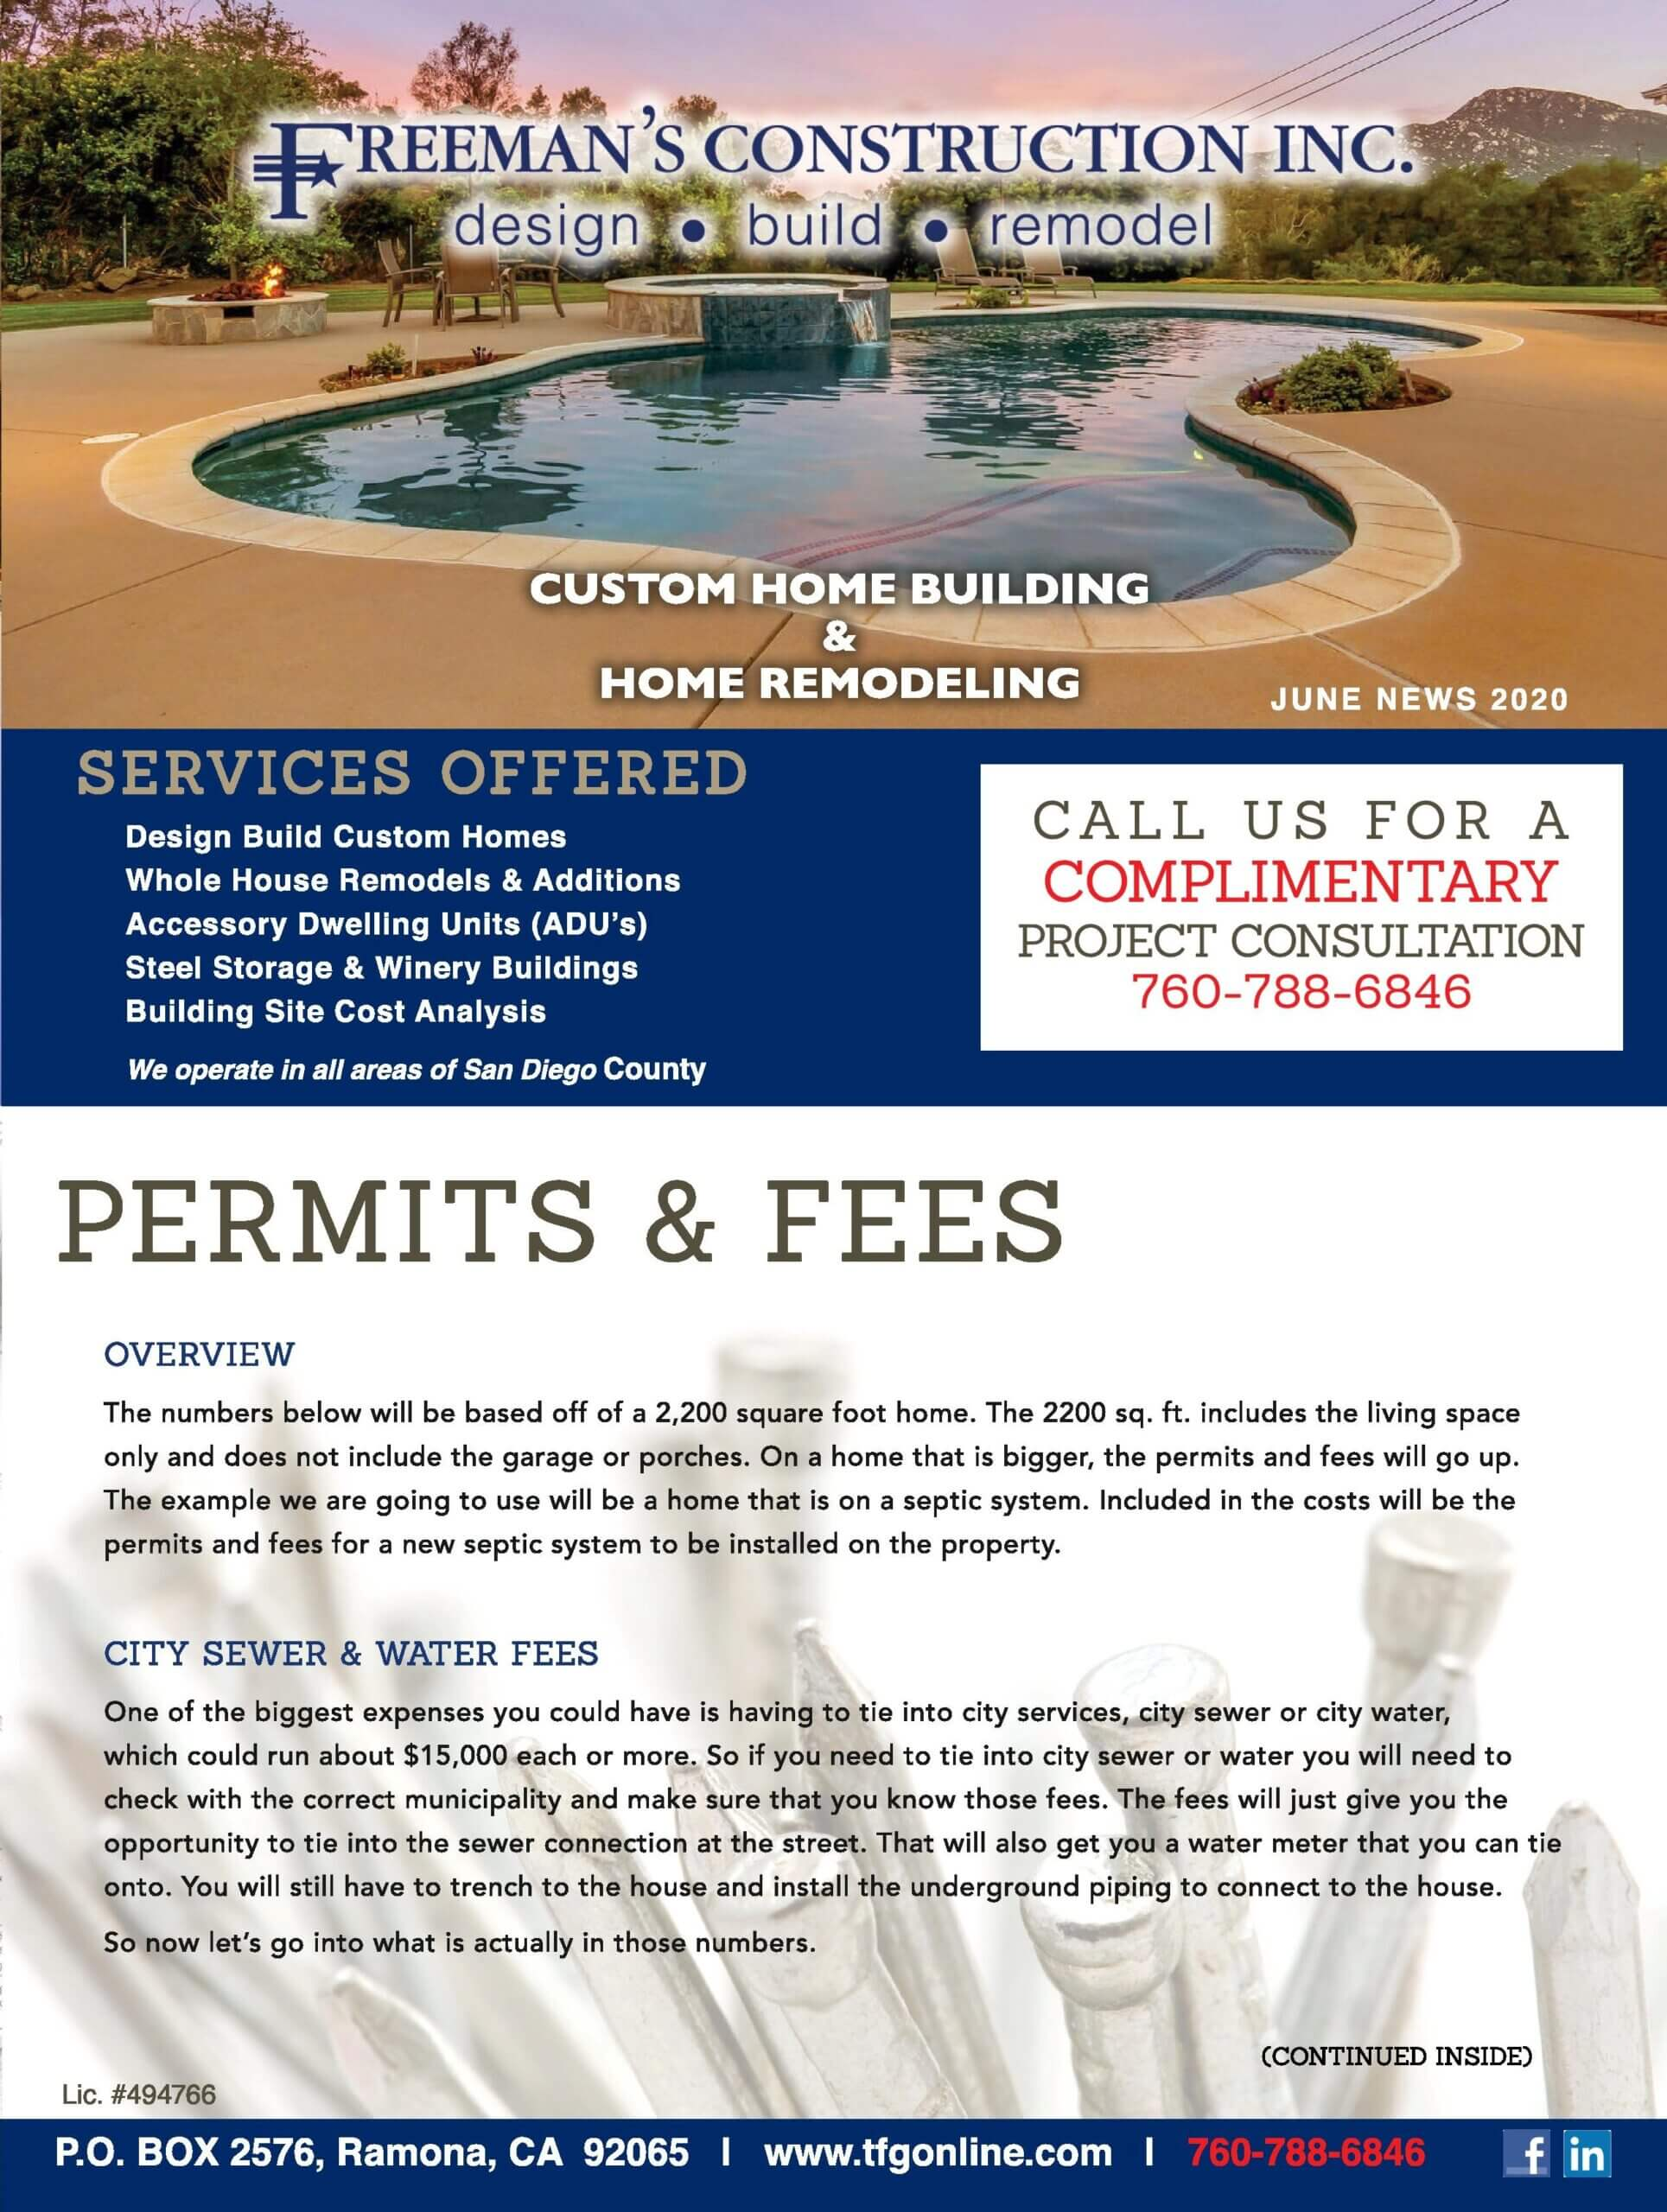 freemans-construction-inc-june-2020-newsletter-permits-and-fees